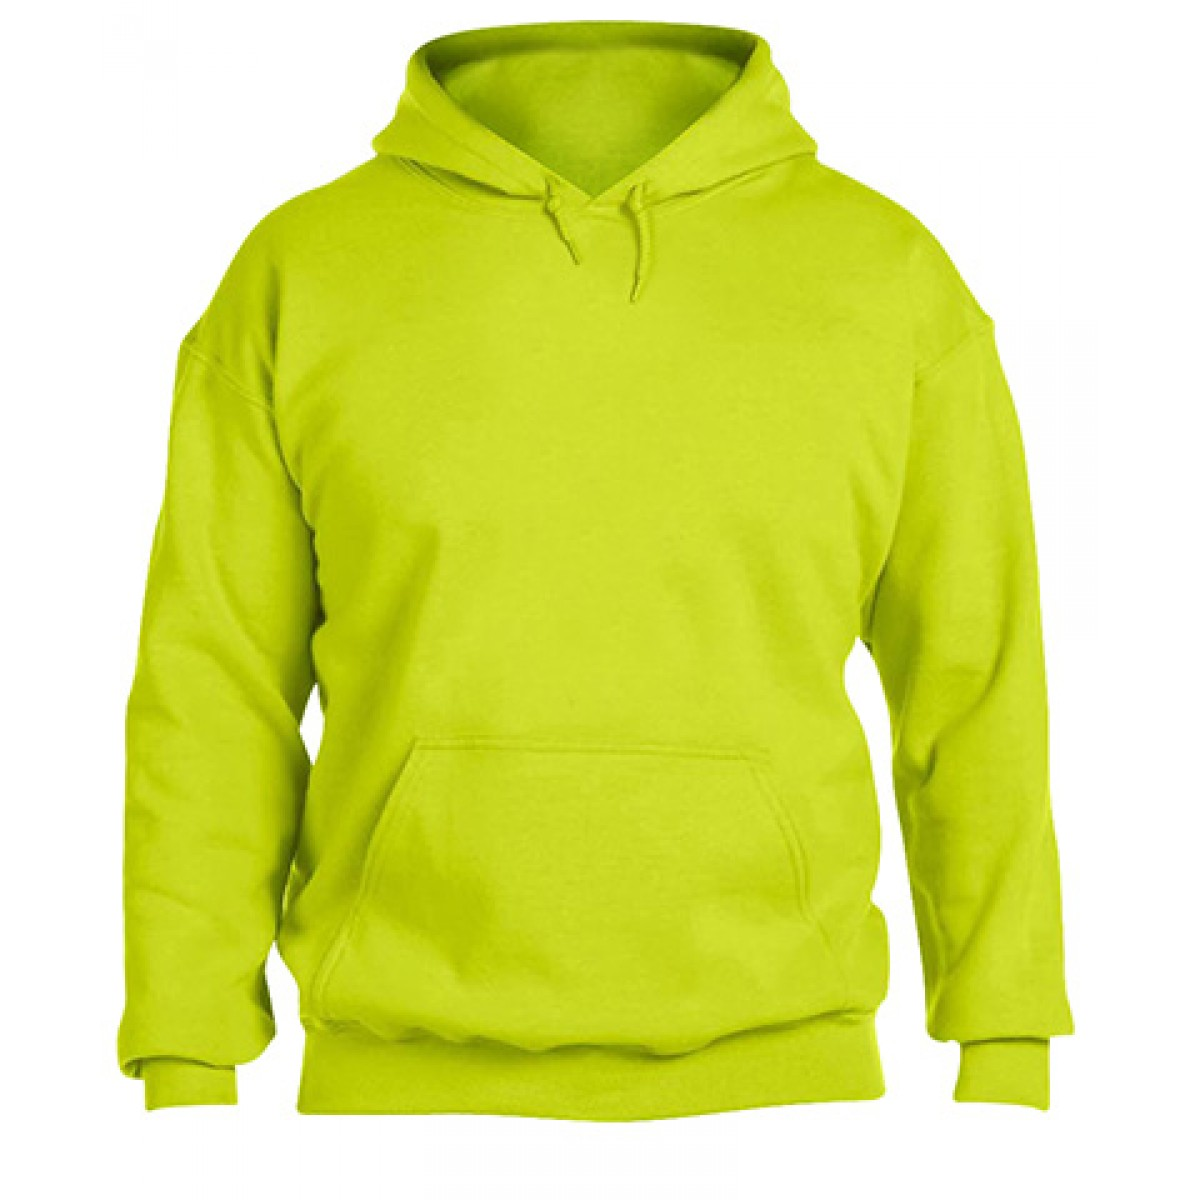 Hooded Sweatshirt 50/50 Heavy Blend-Safety Green-L